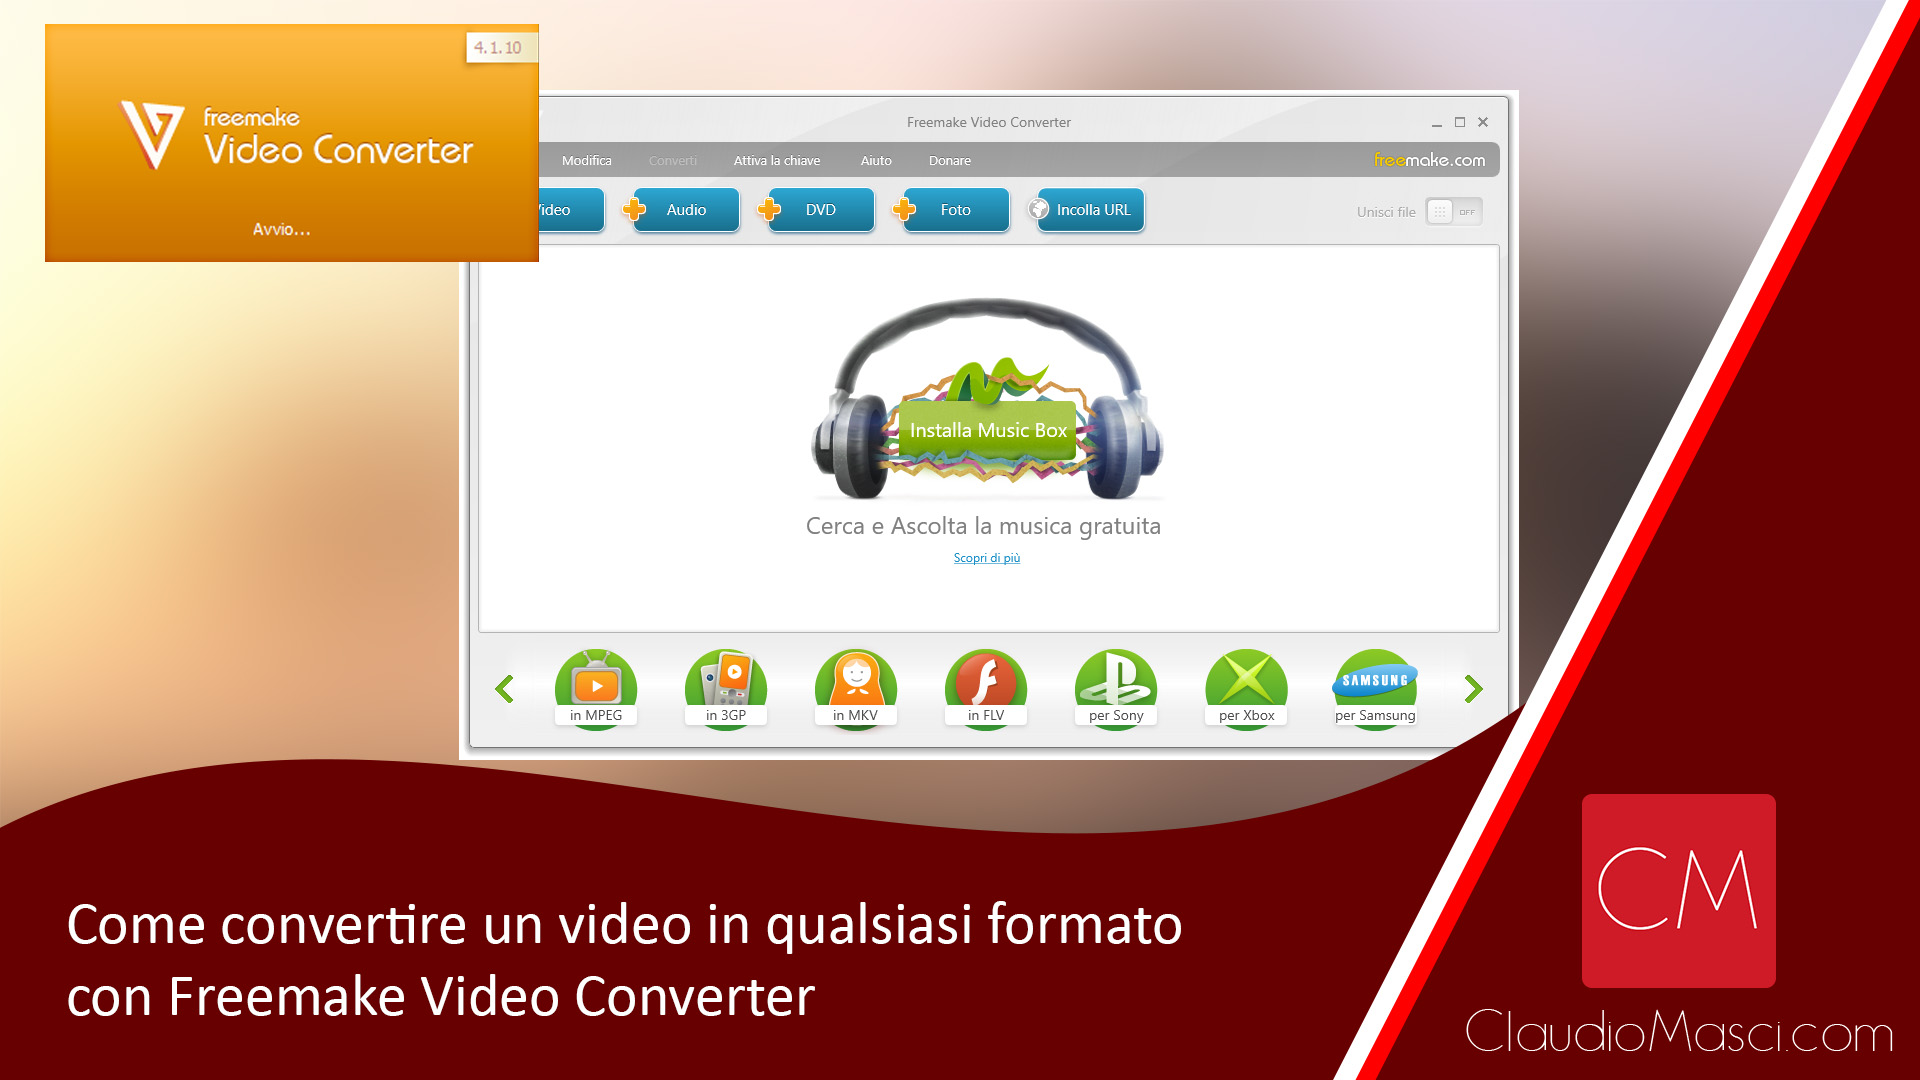 Come convertire un video in qualsiasi formato con Freemake Video Converter